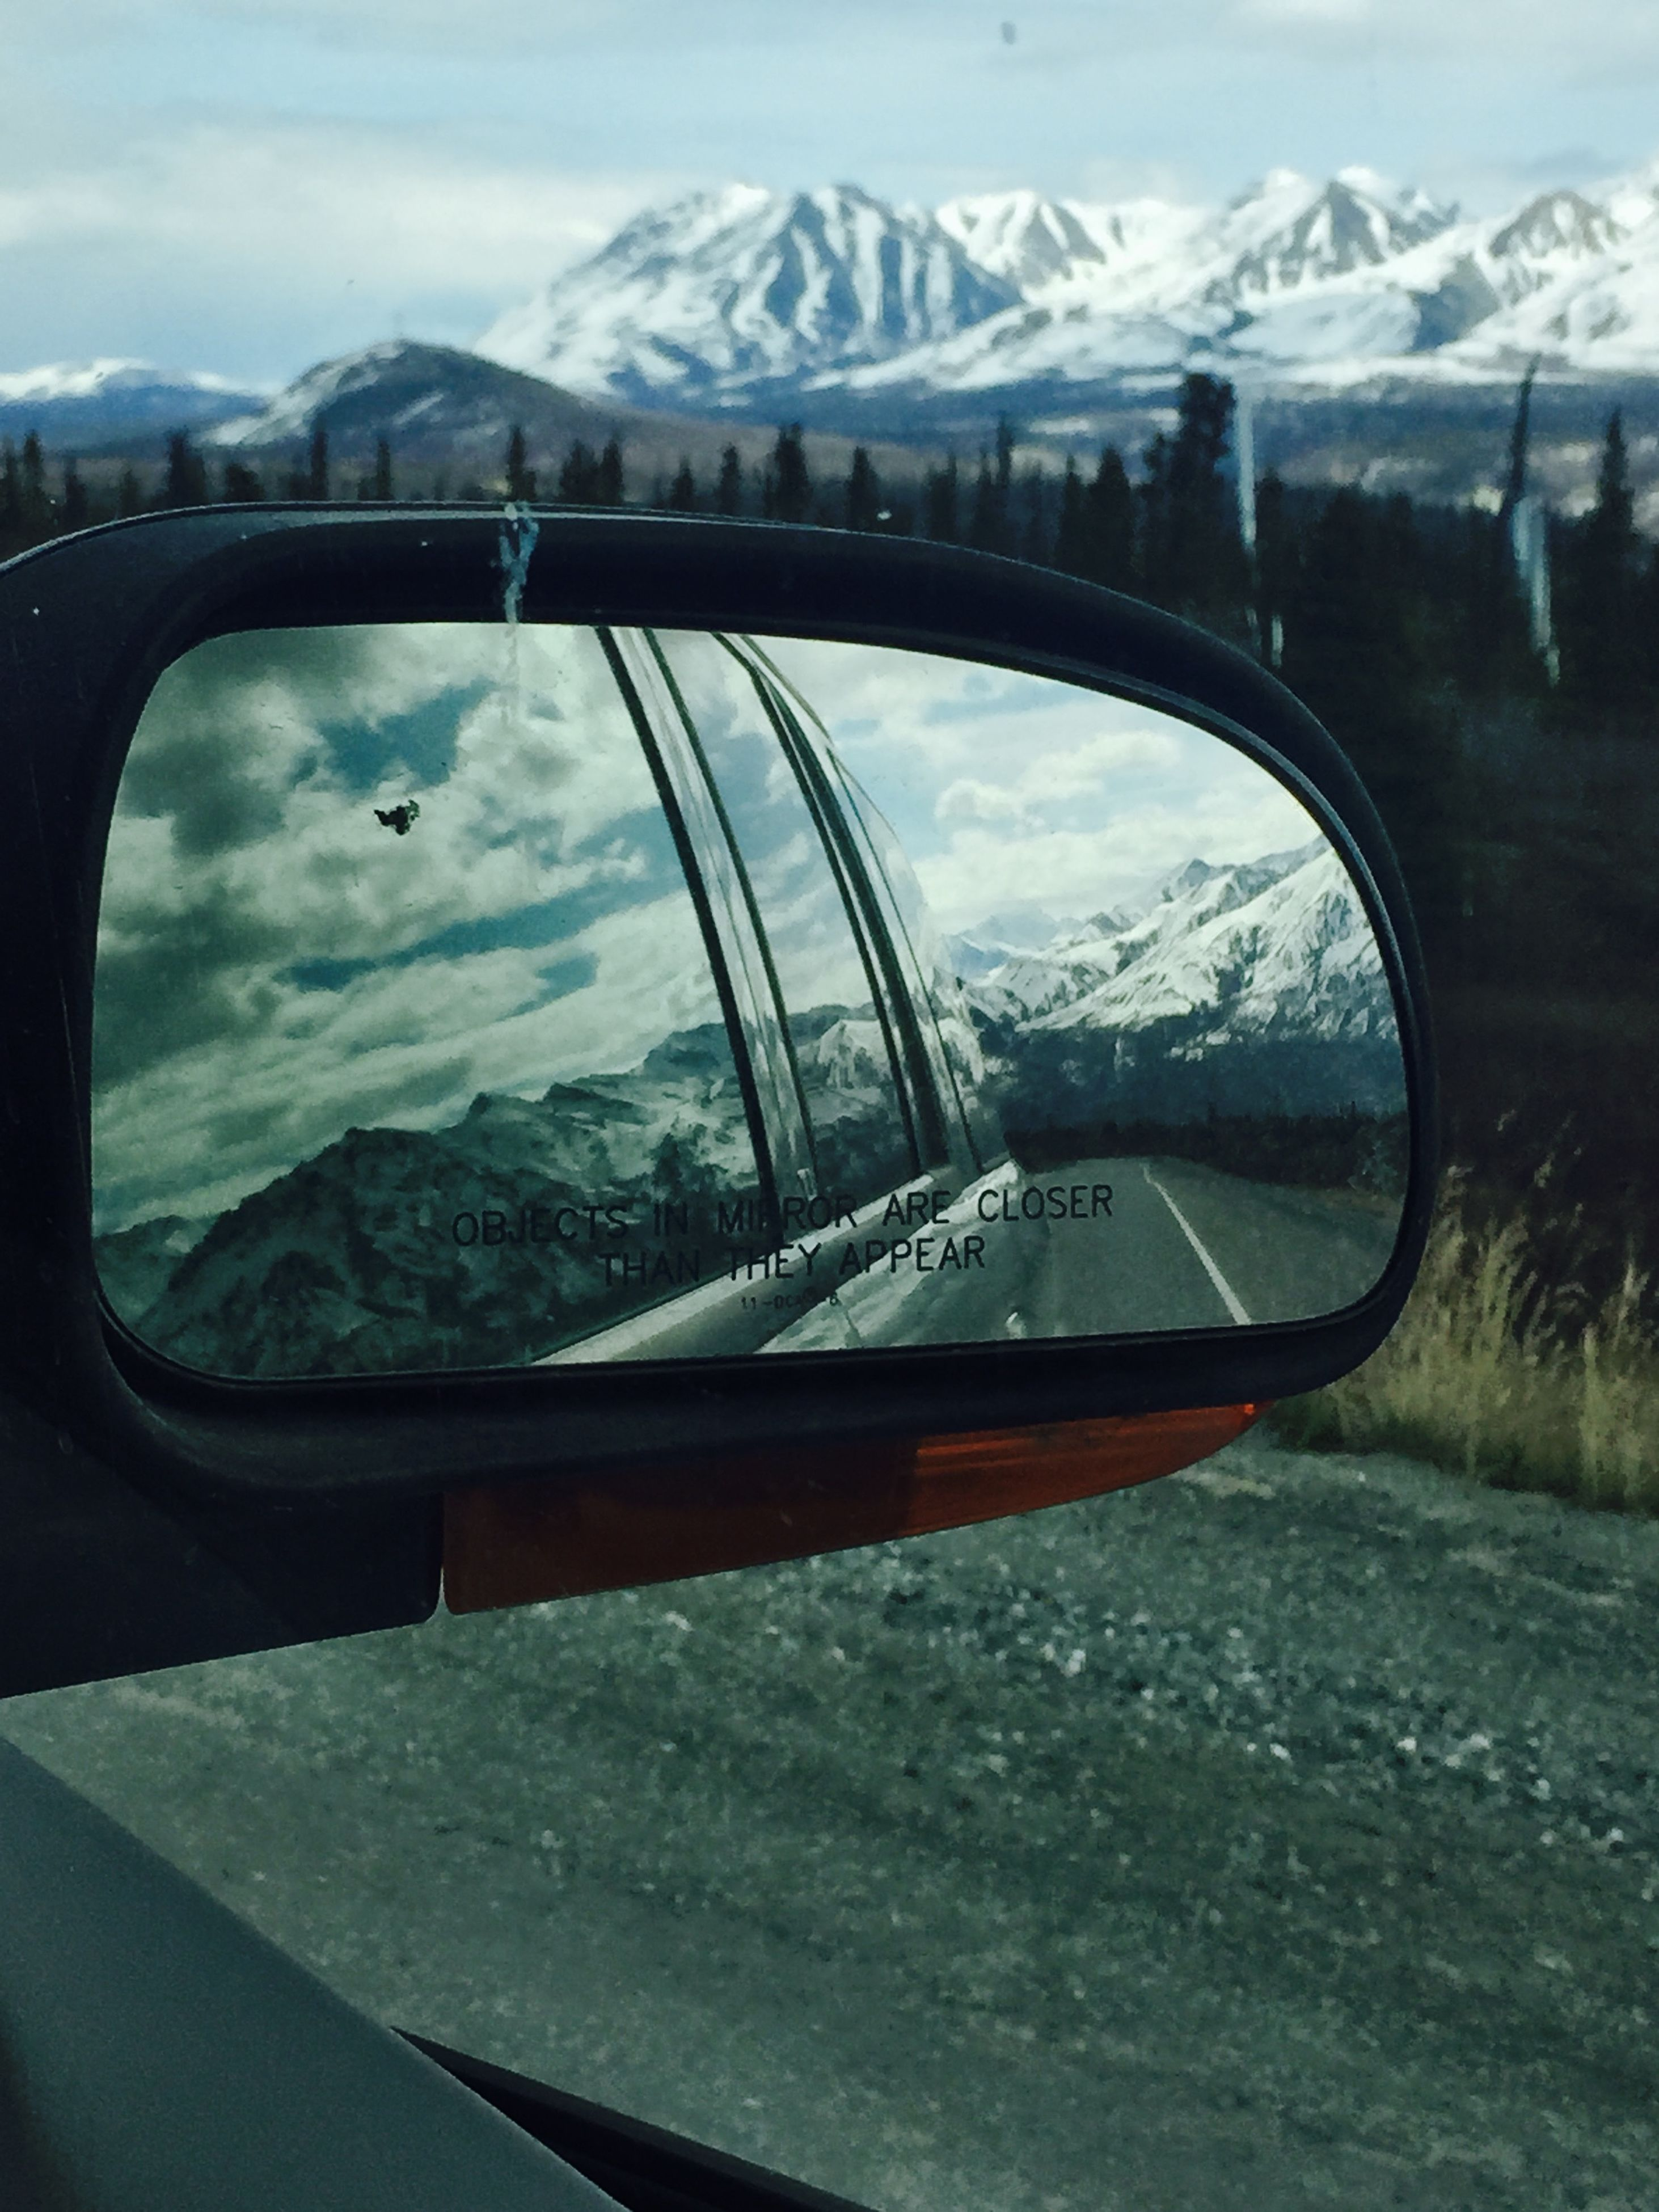 transportation, mode of transport, mountain, sky, snow, land vehicle, car, winter, cold temperature, season, reflection, road, cloud - sky, mountain range, weather, side-view mirror, landscape, travel, nature, part of